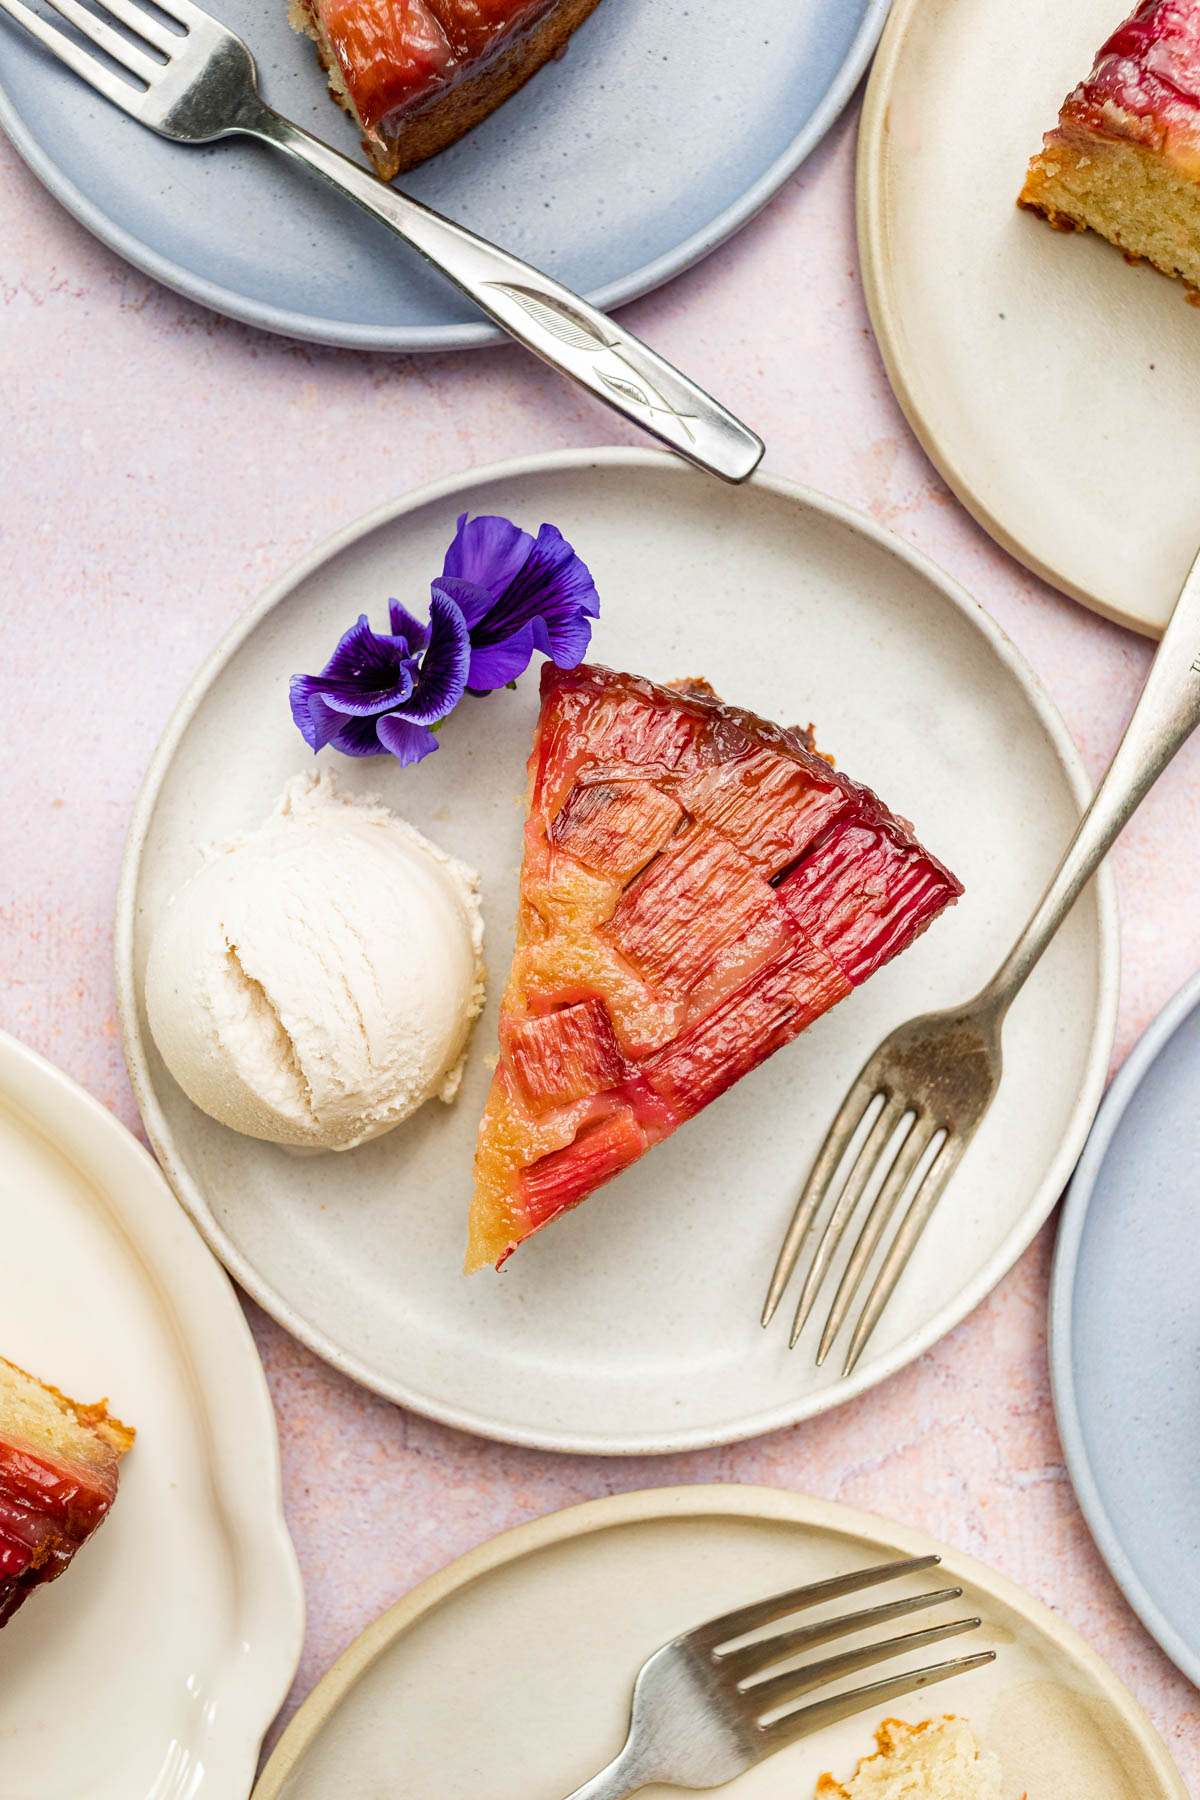 Slices of cake on plates with ice cream and flowers.